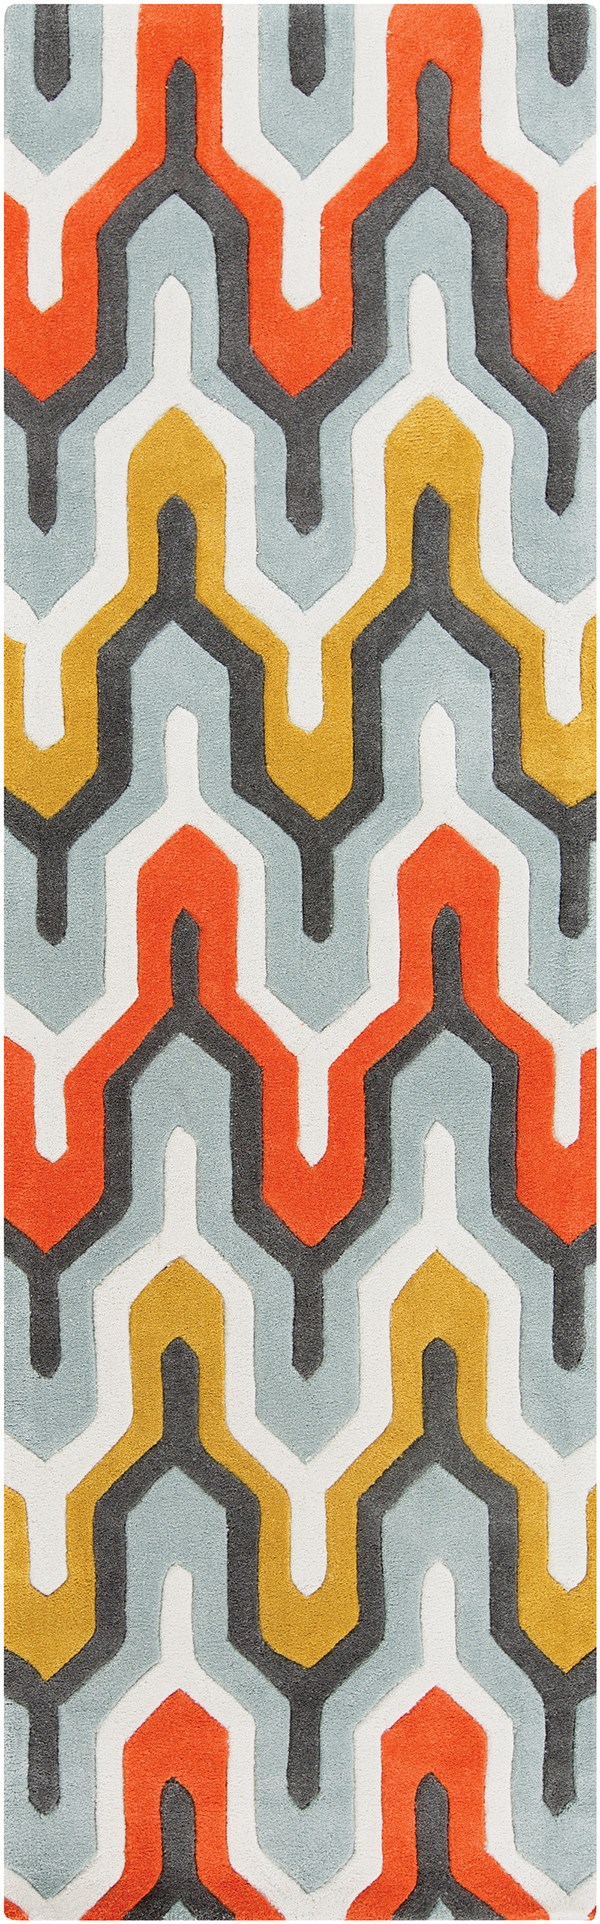 Pewter, Orange Red, Foggy Blue Moroccan Area Rug